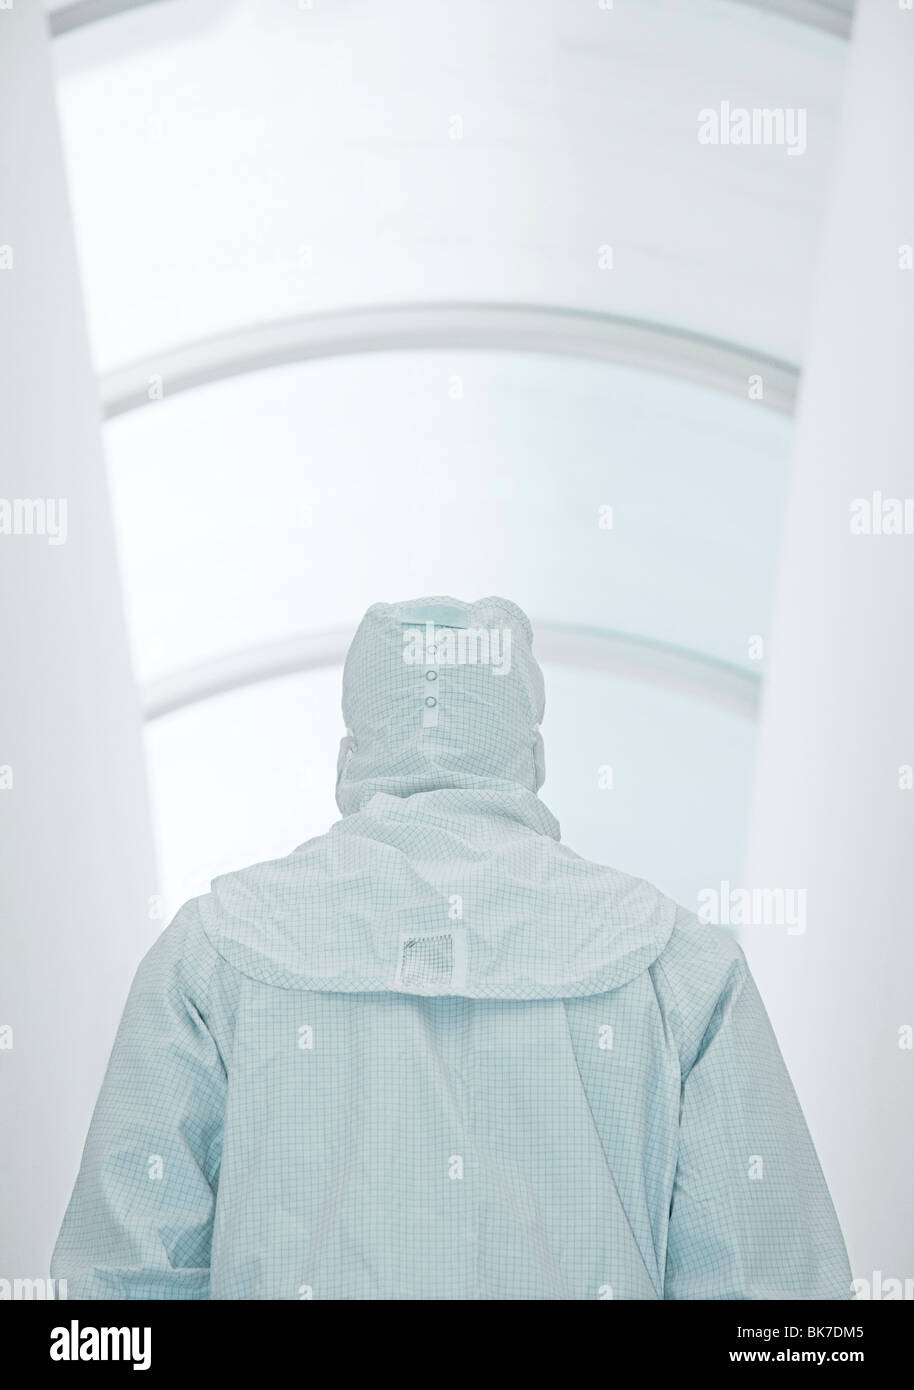 Scientist in an isolation suit - Stock Image